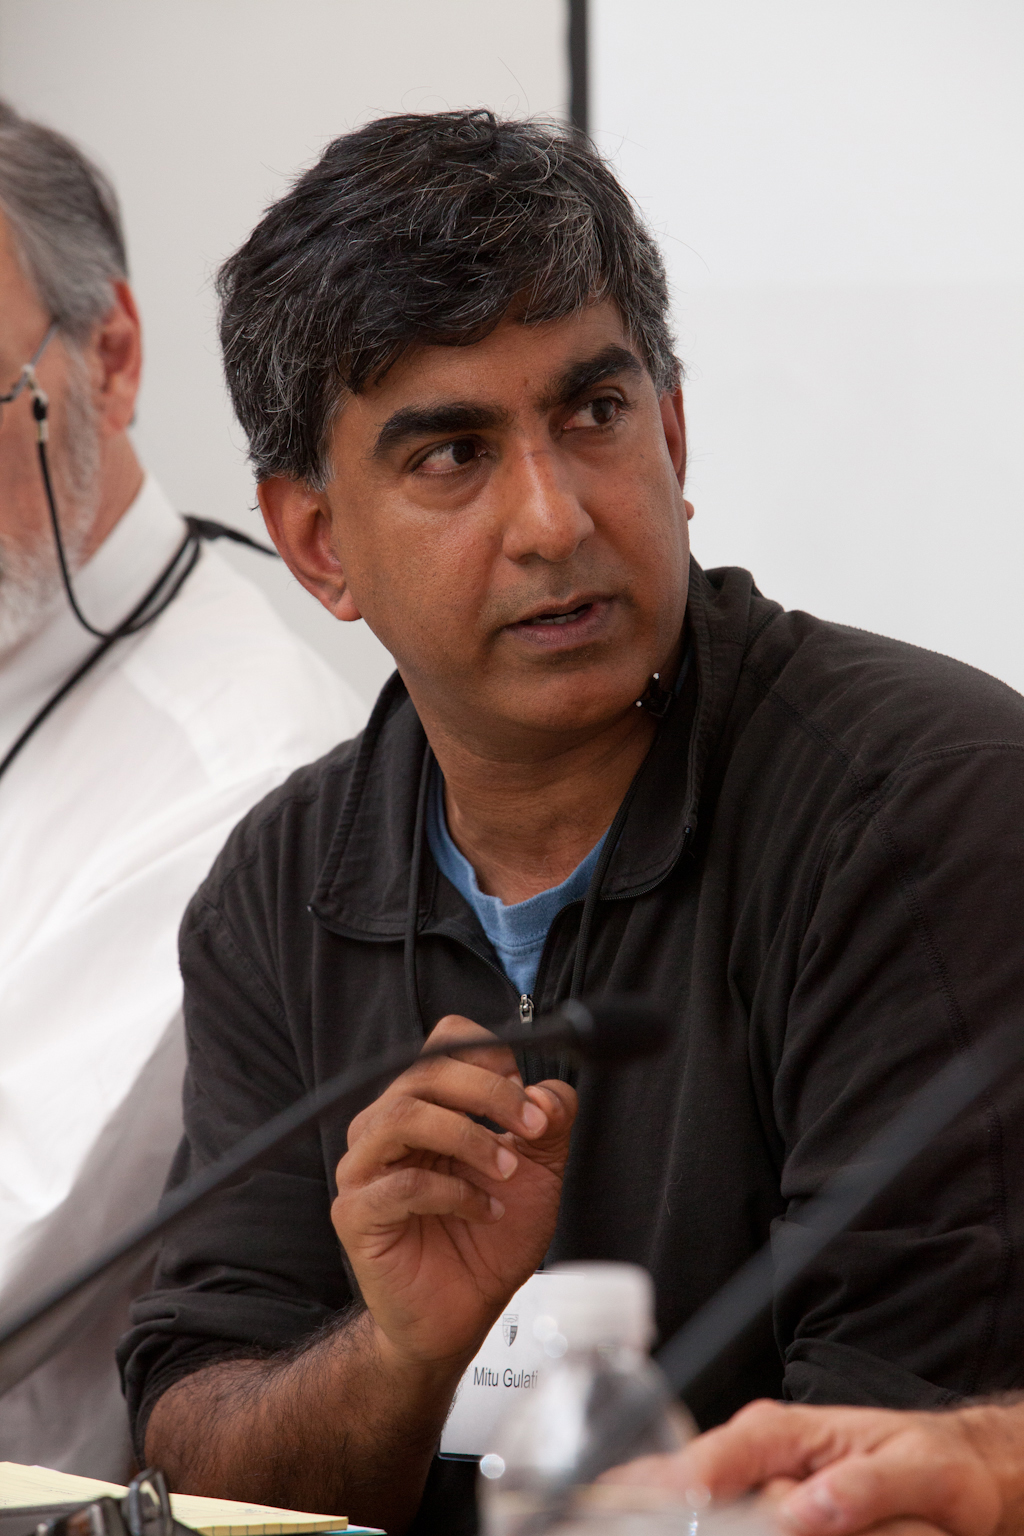 Duke Law Prof. Mitu Gulati